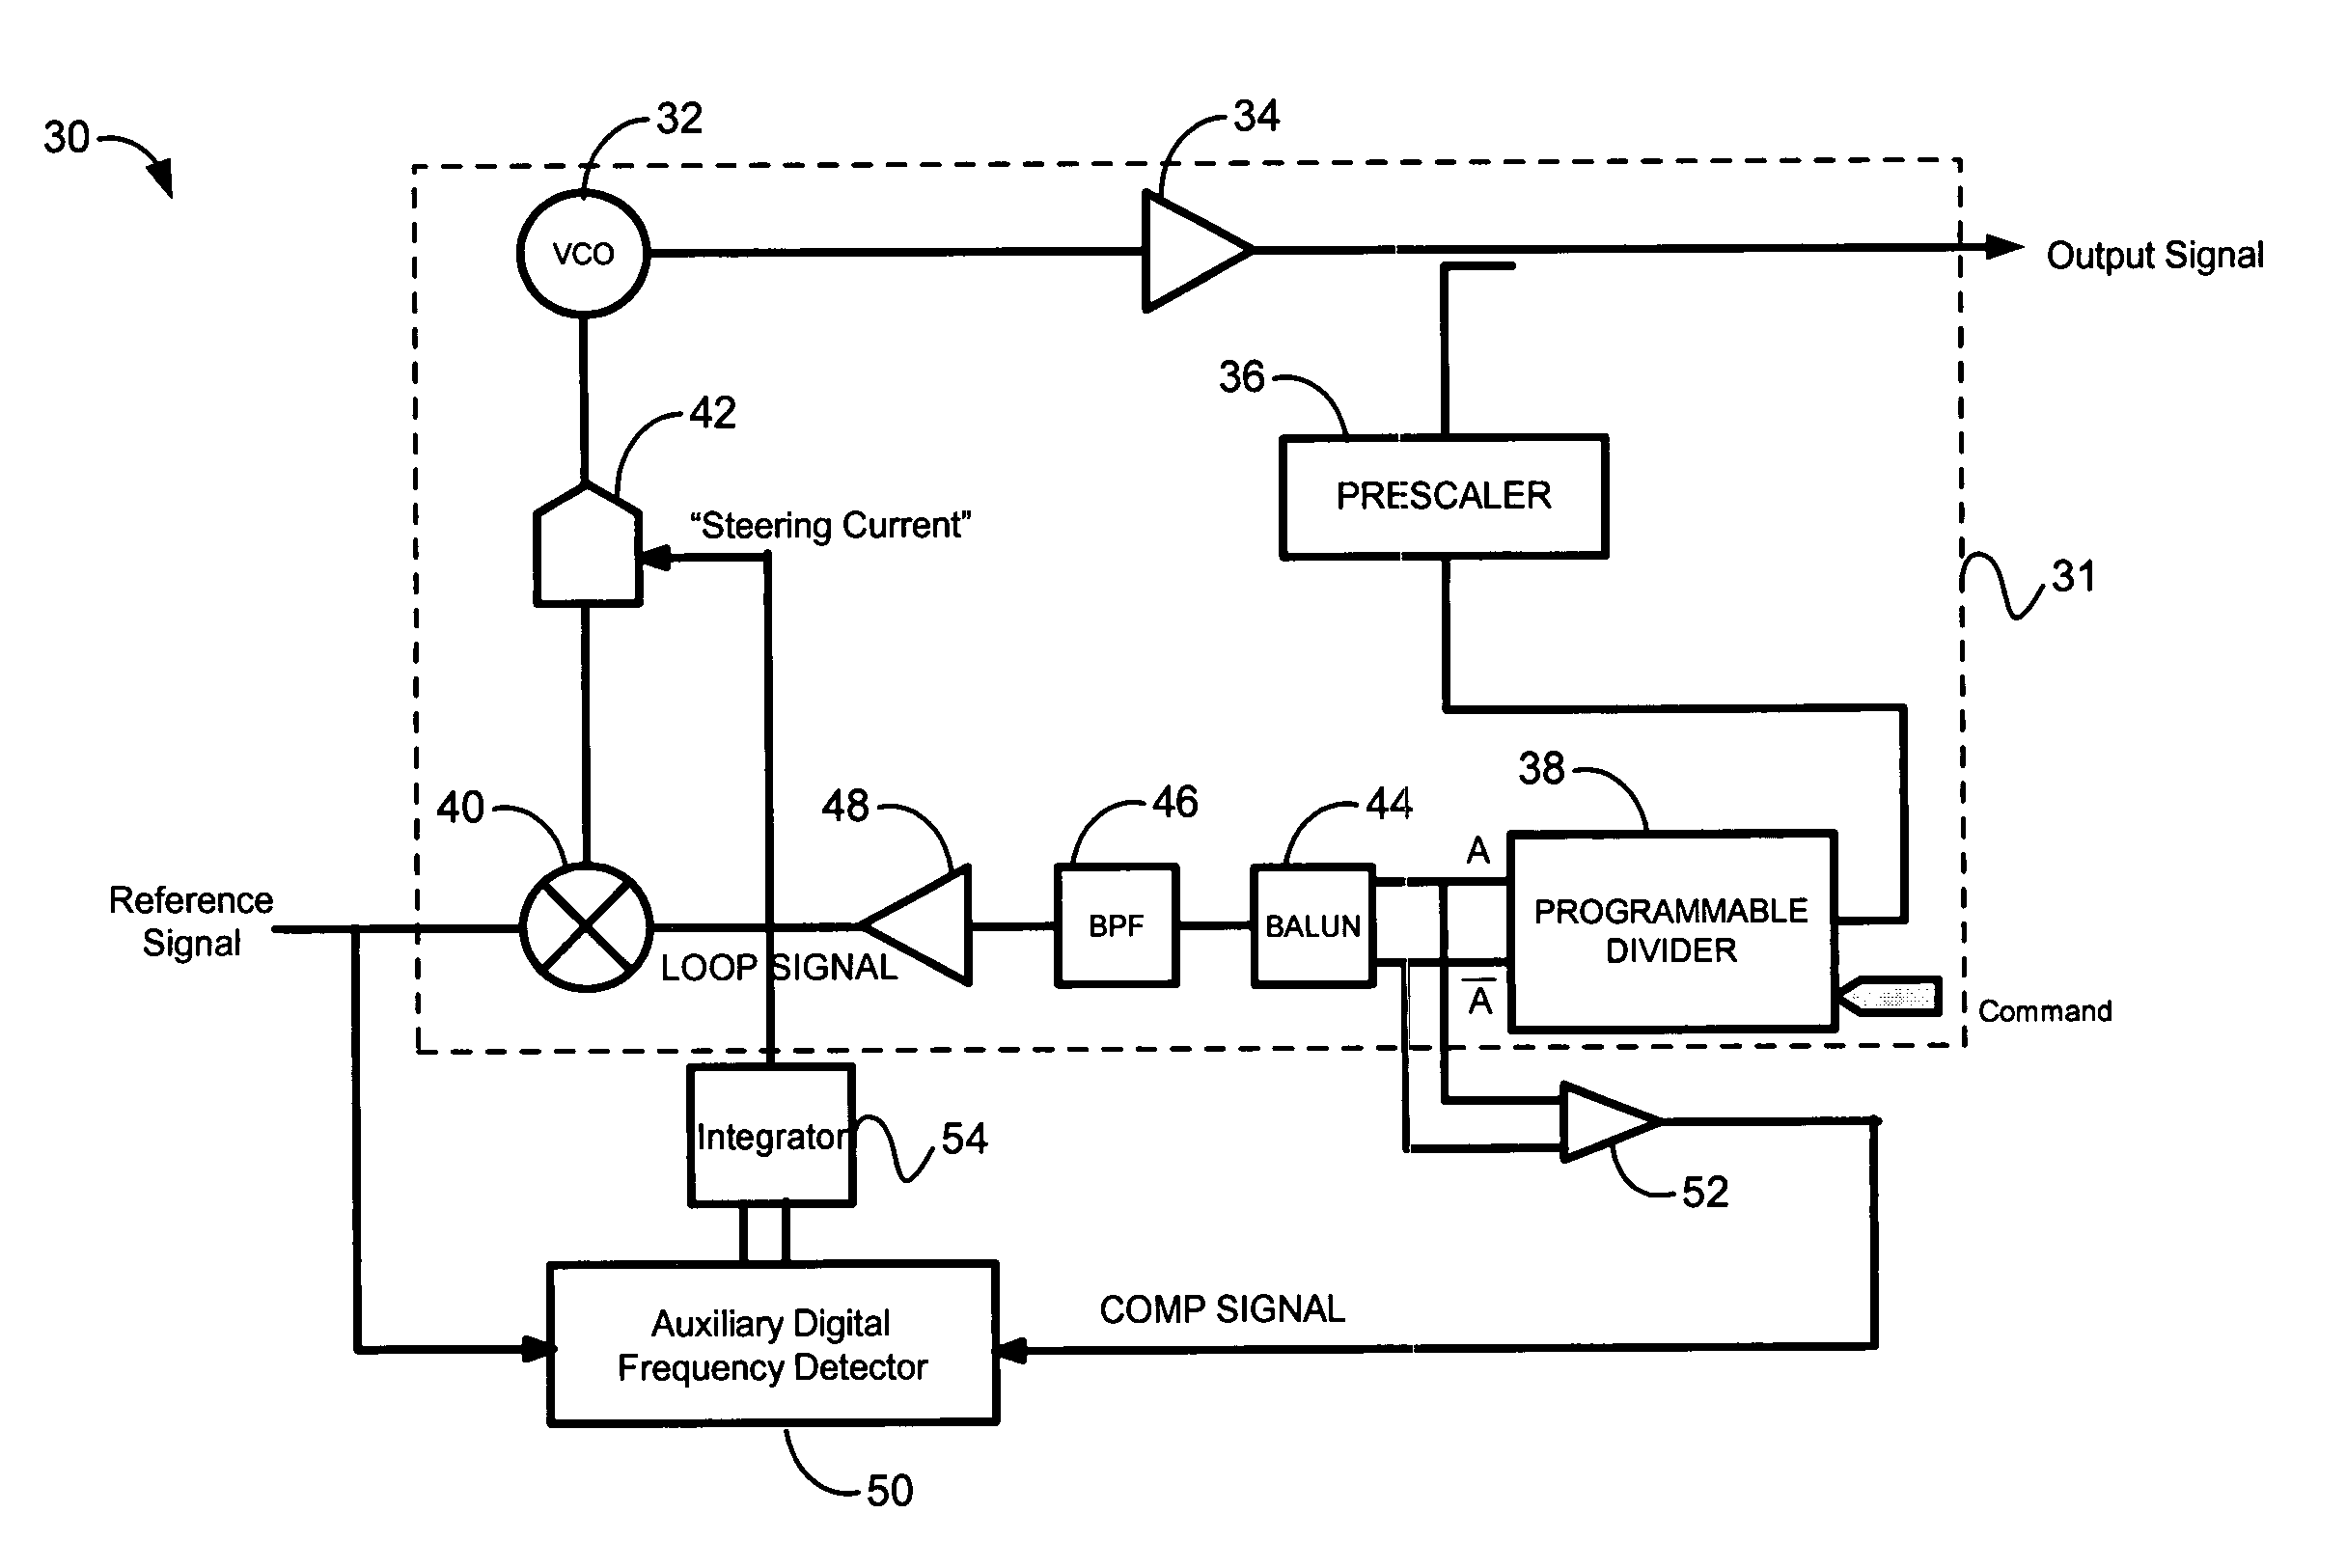 Us7038507 Frequency Synthesizer Having Pll With An Circuit Diaghram Of Low Patent Drawing